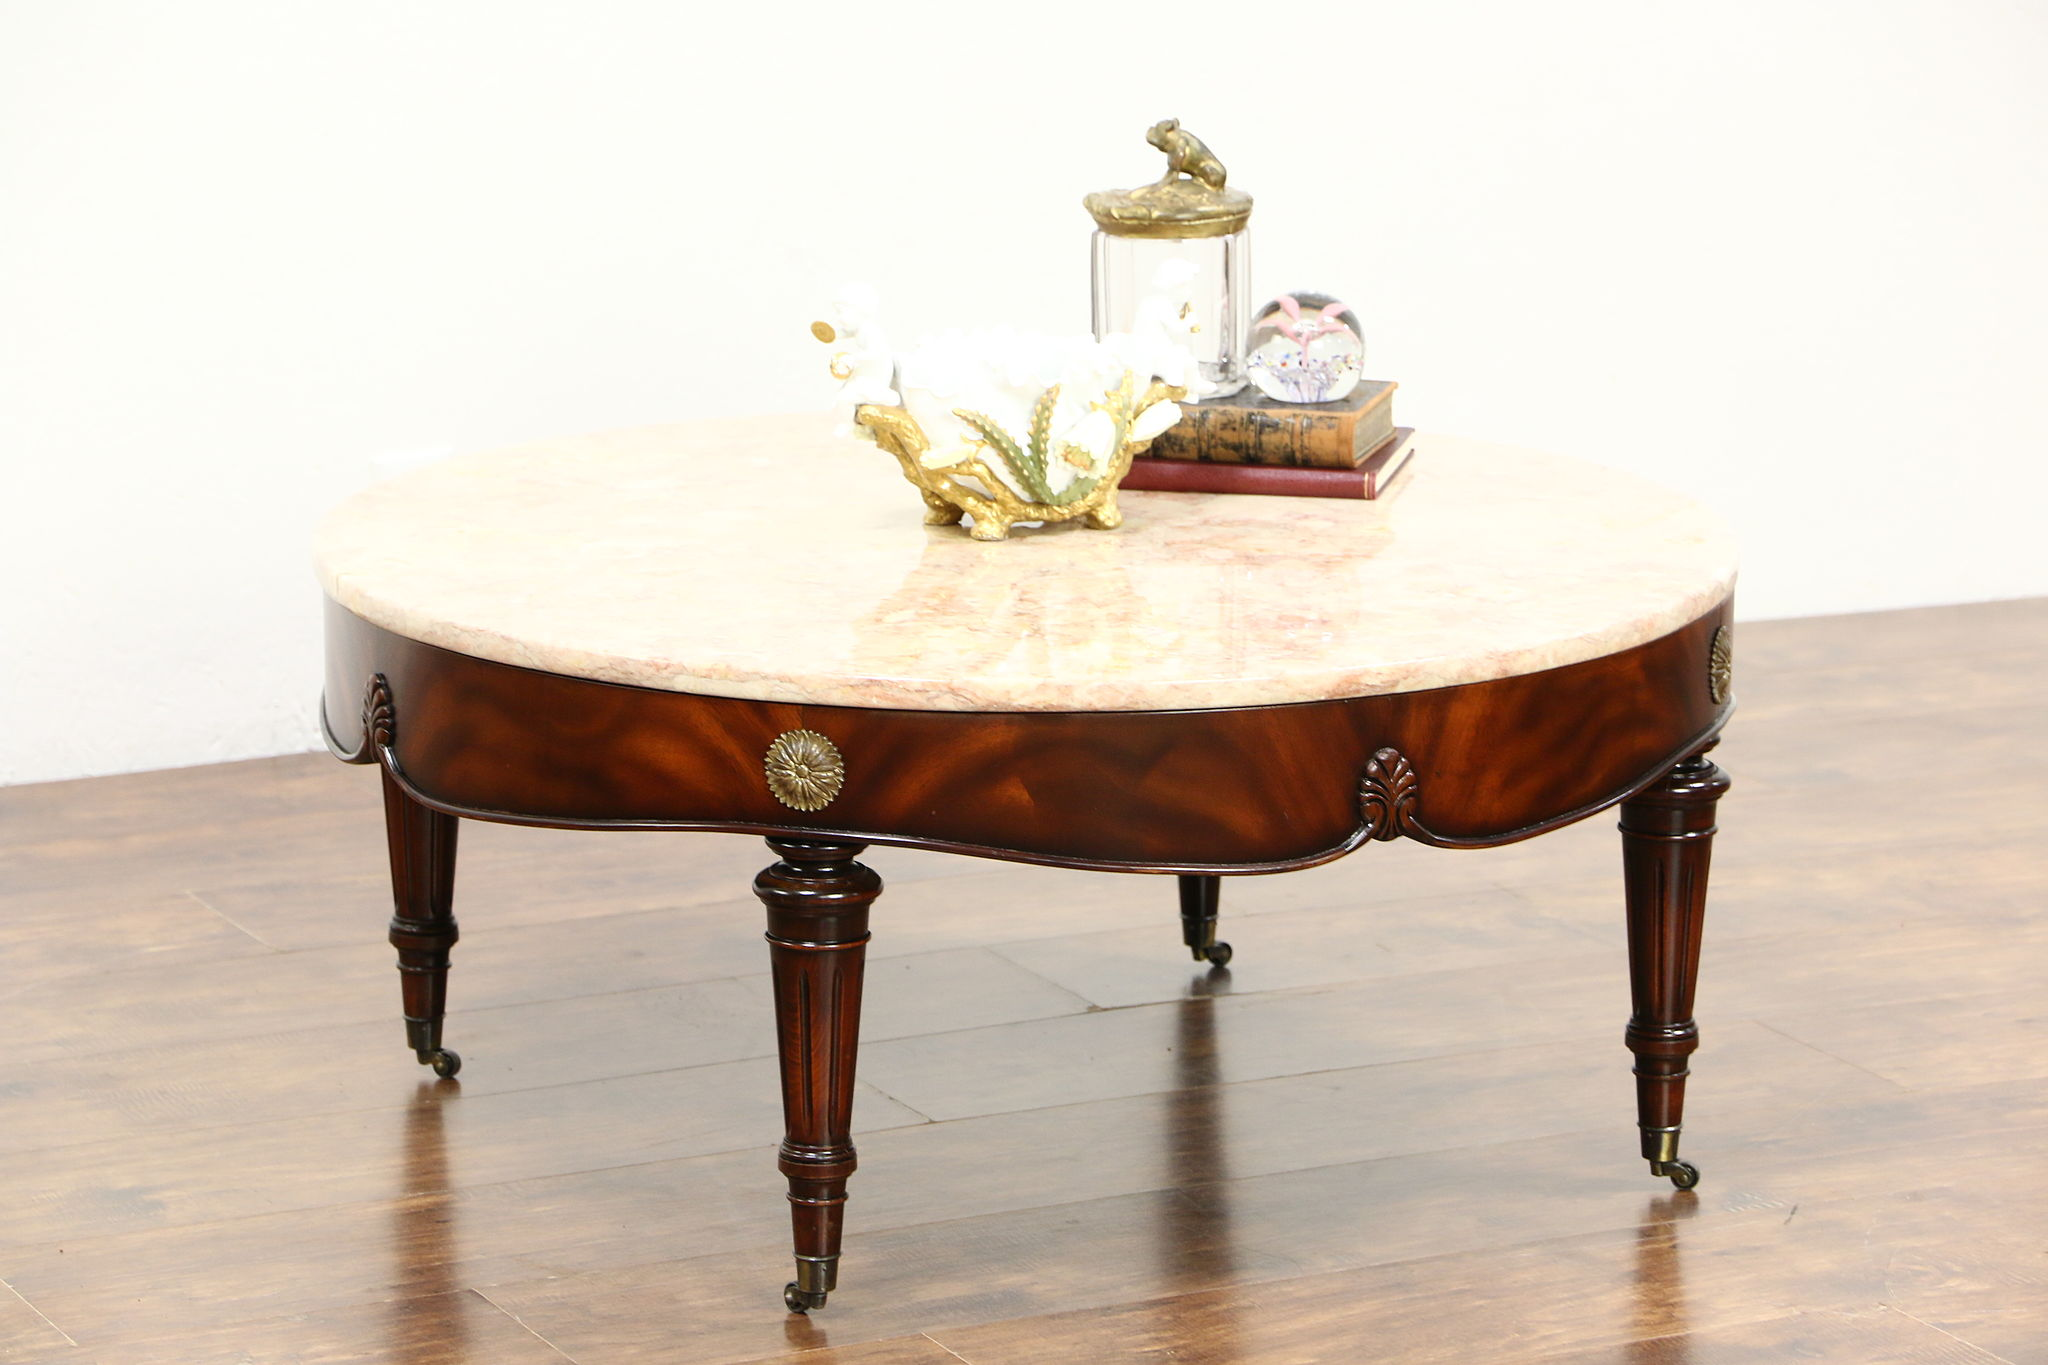 Classical Round Mahogany Vintage Coffee Table, Rose Marble Top